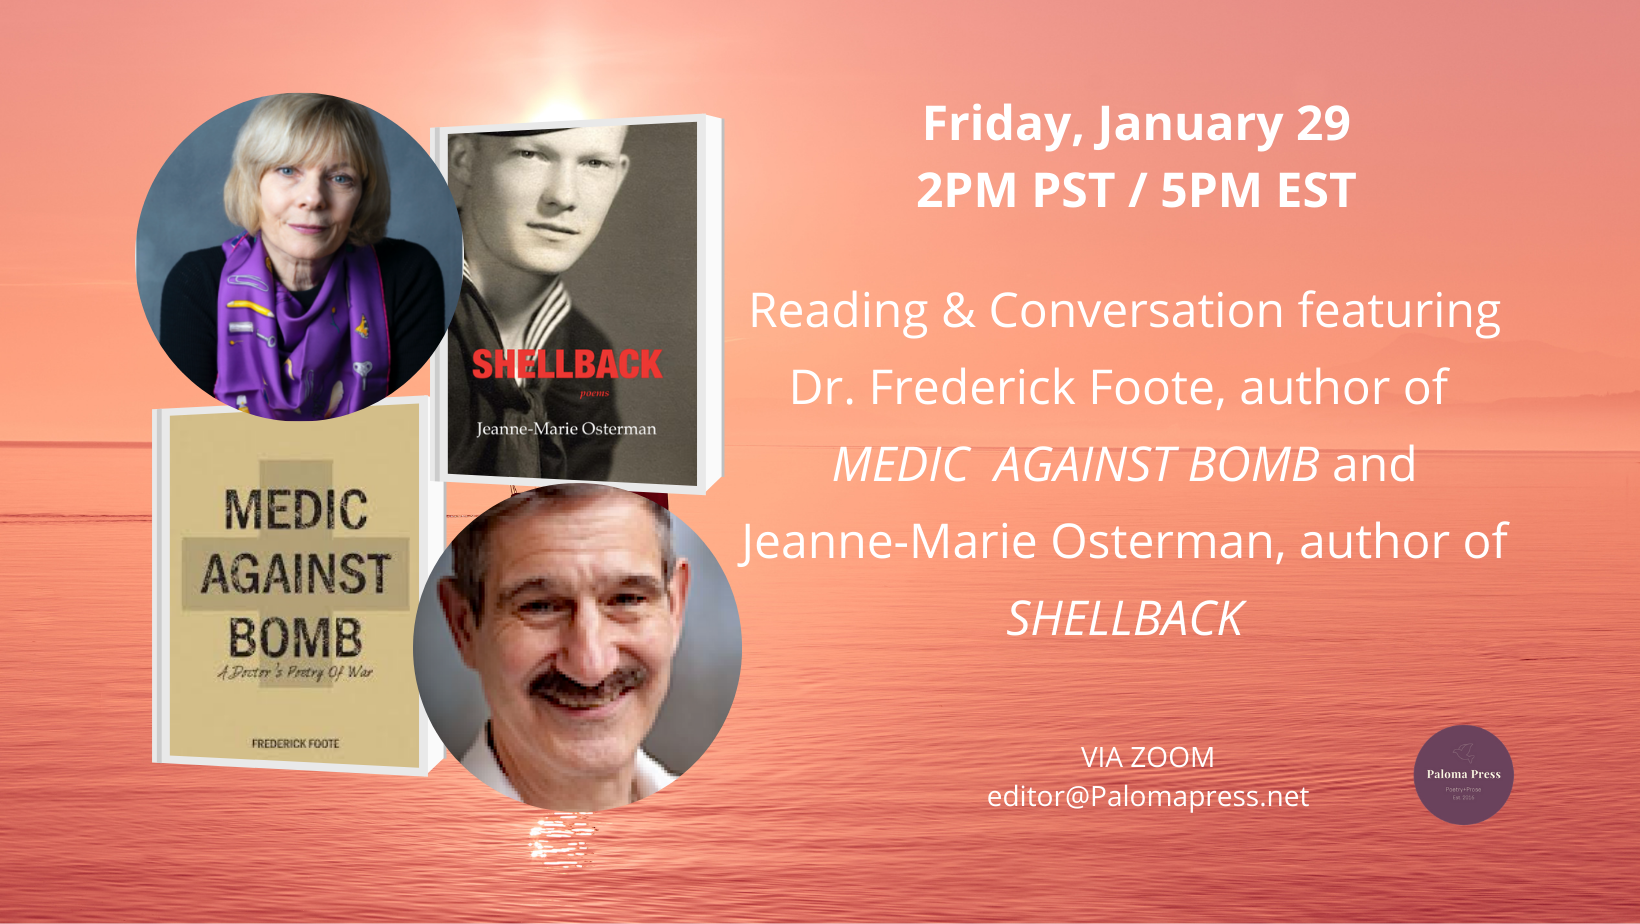 Reading & Conversation featuring Dr. Frederick Foote, author of MEDIC AGAINST BOMB and Jeanne-Marie Osterman, author of SHELLBACK